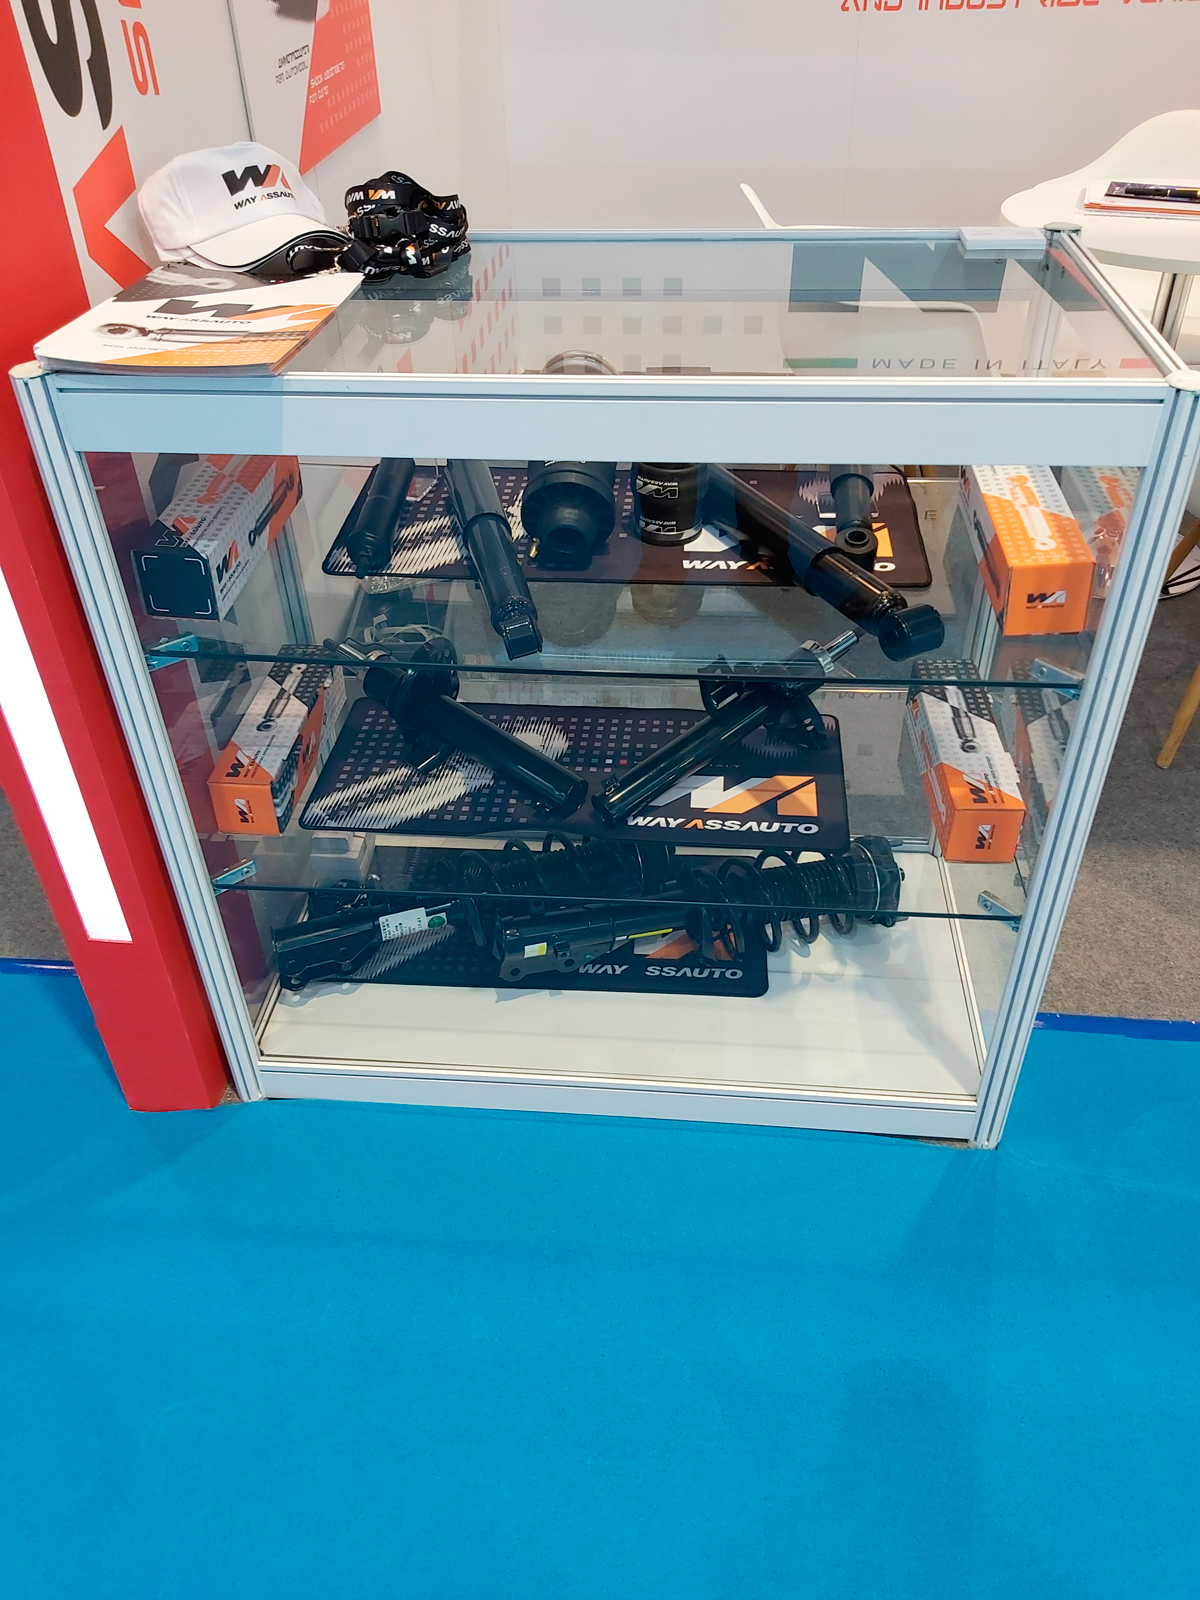 automechanika-shangai-2019-way-assauto2